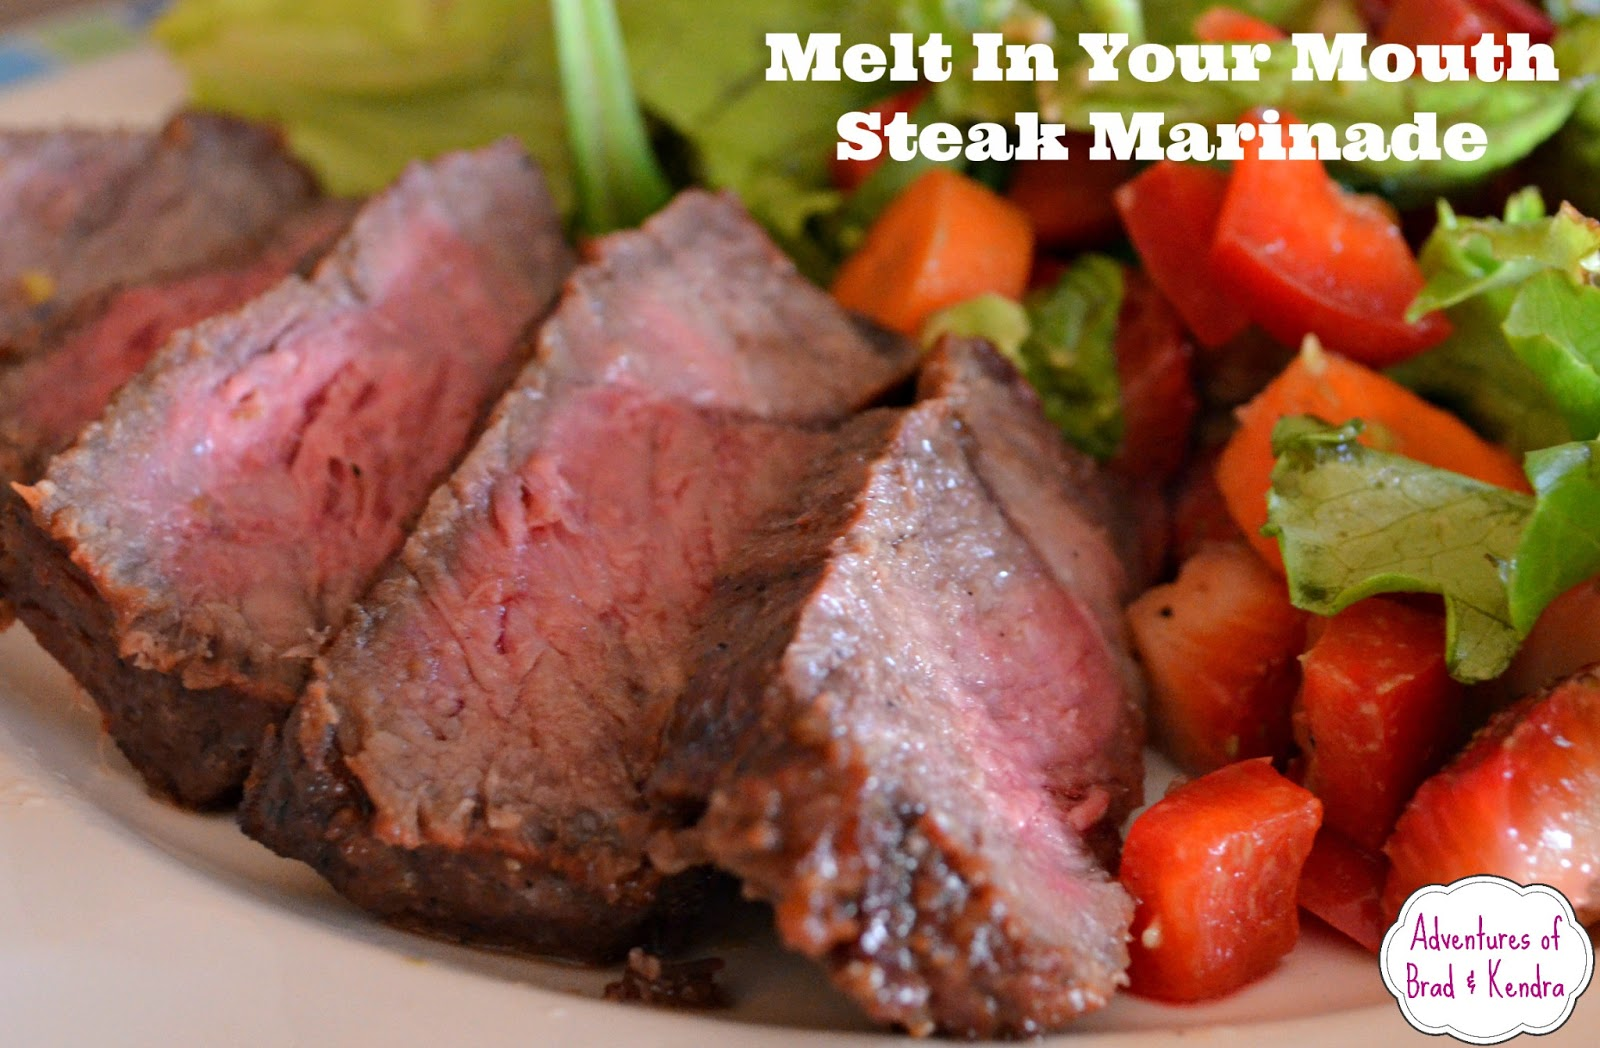 Melt In Your Mouth Steak Marinade Simply Darr Ling